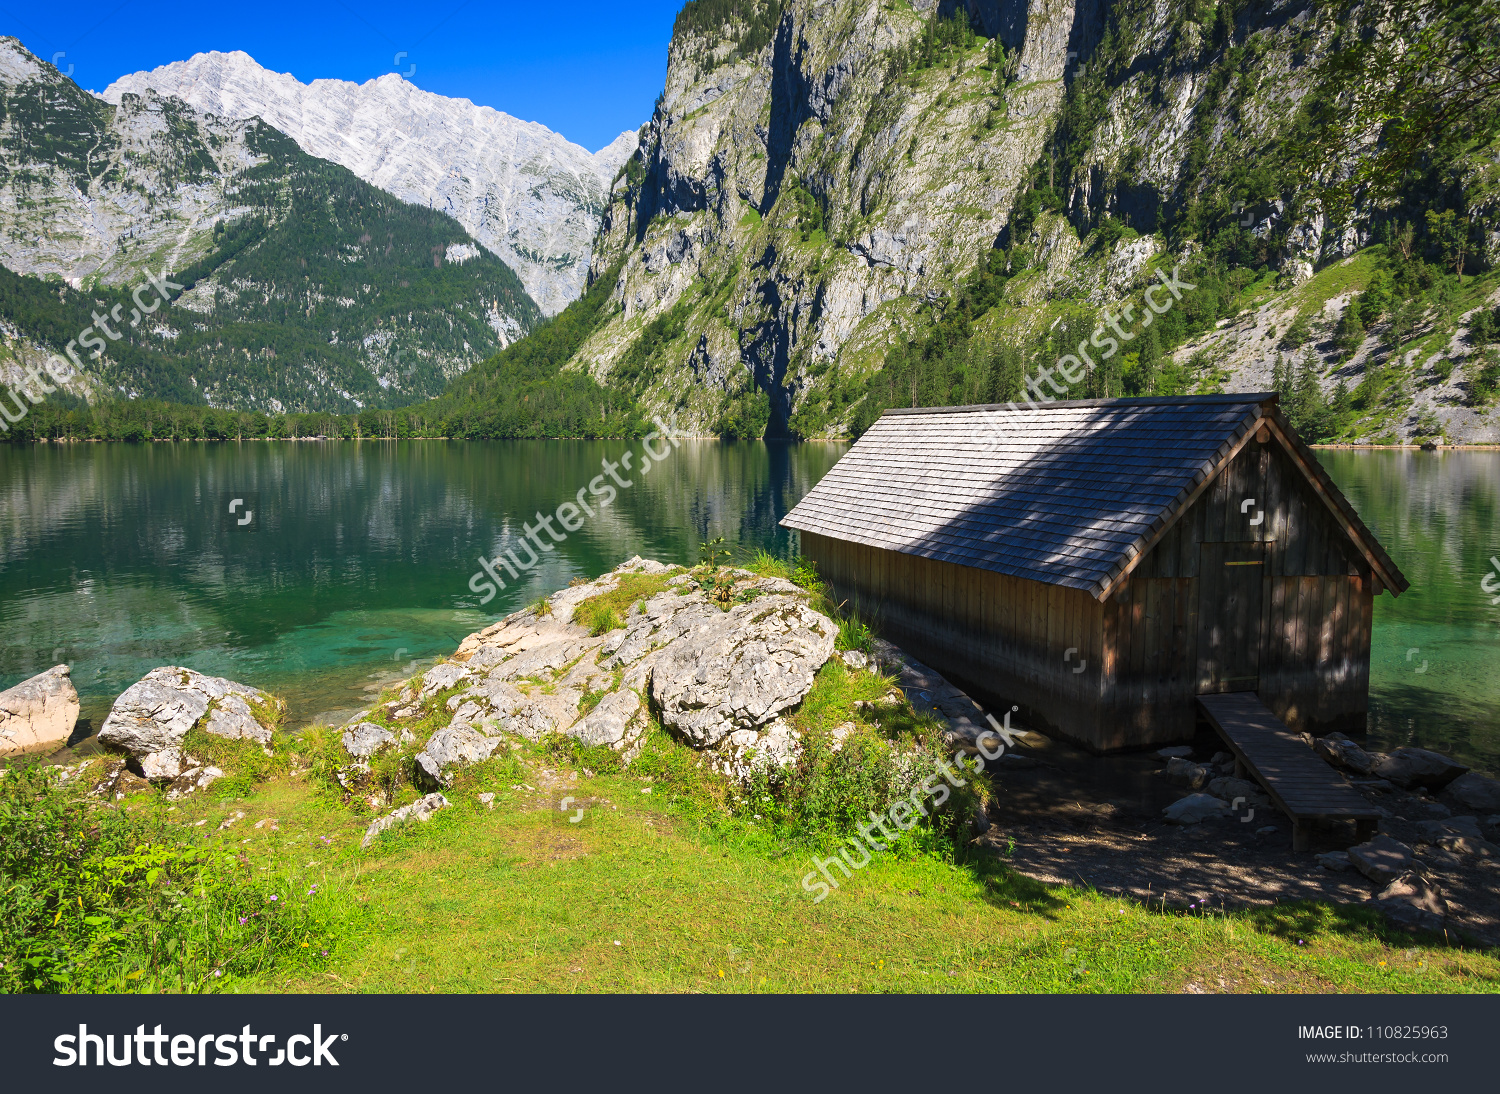 Boathouse At Obersee Mountain Lake, Berchtesgaden National Park.